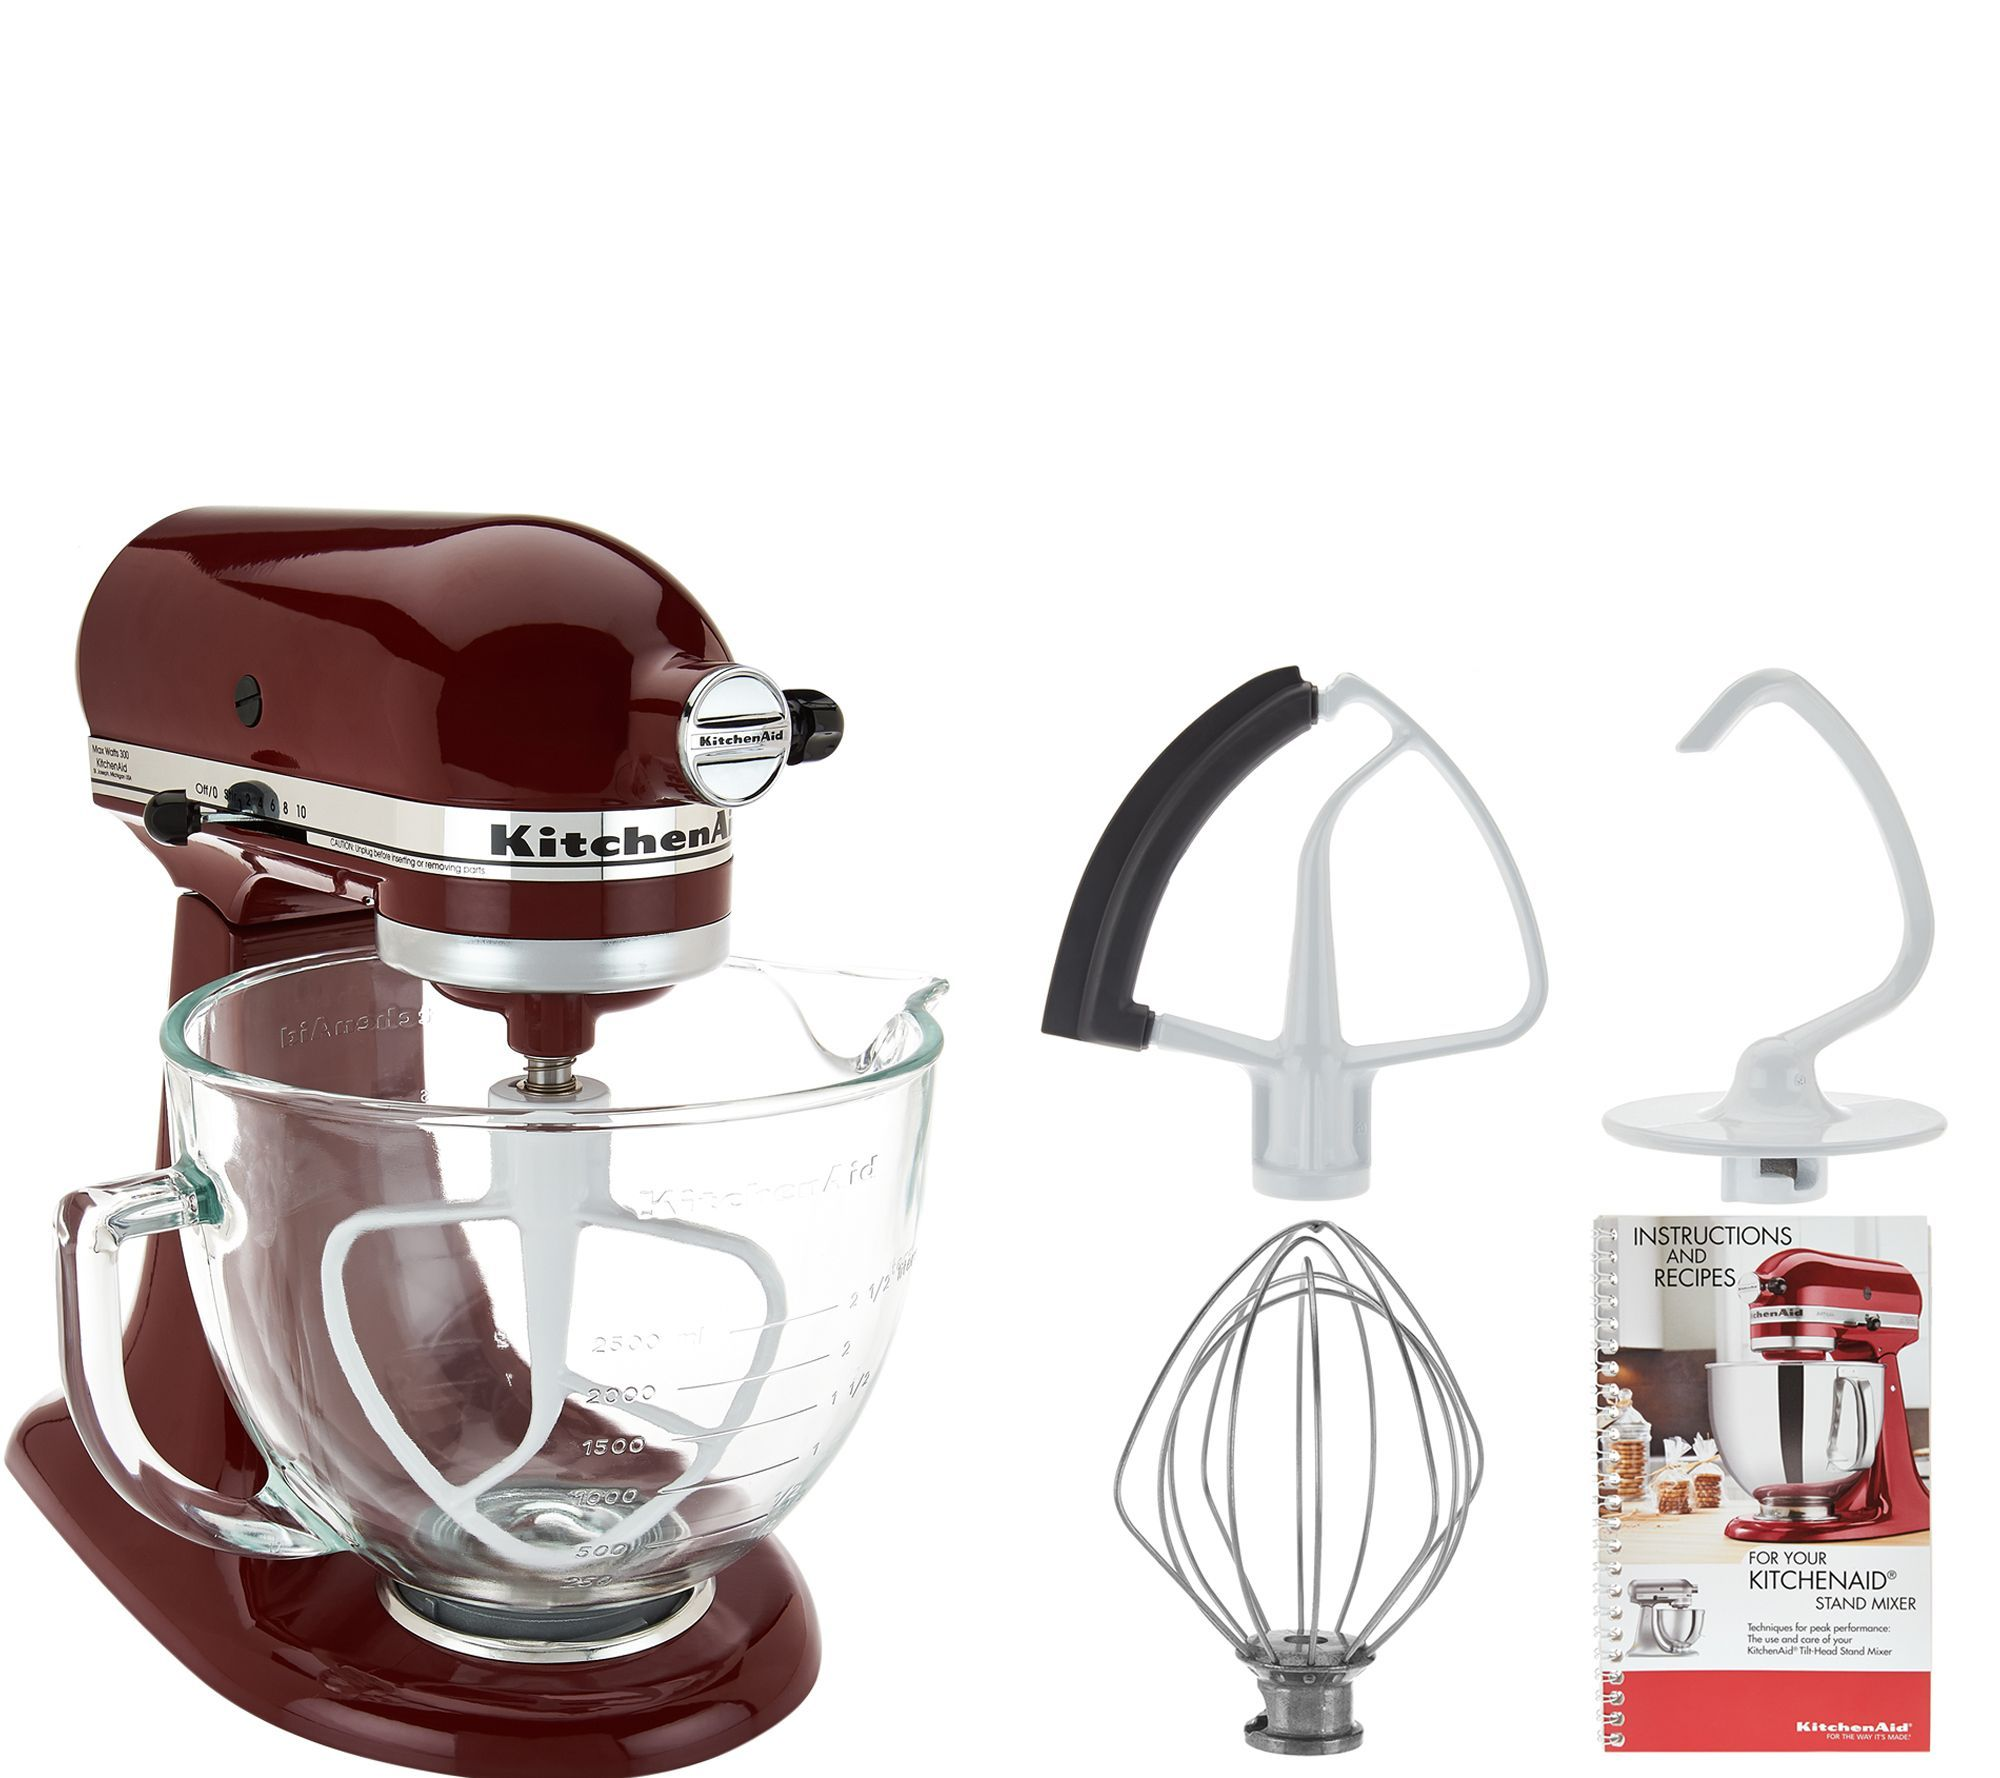 KitchenAid 5qt. 300W Tilt Head Stand Mixer w/Glass Bowl ...